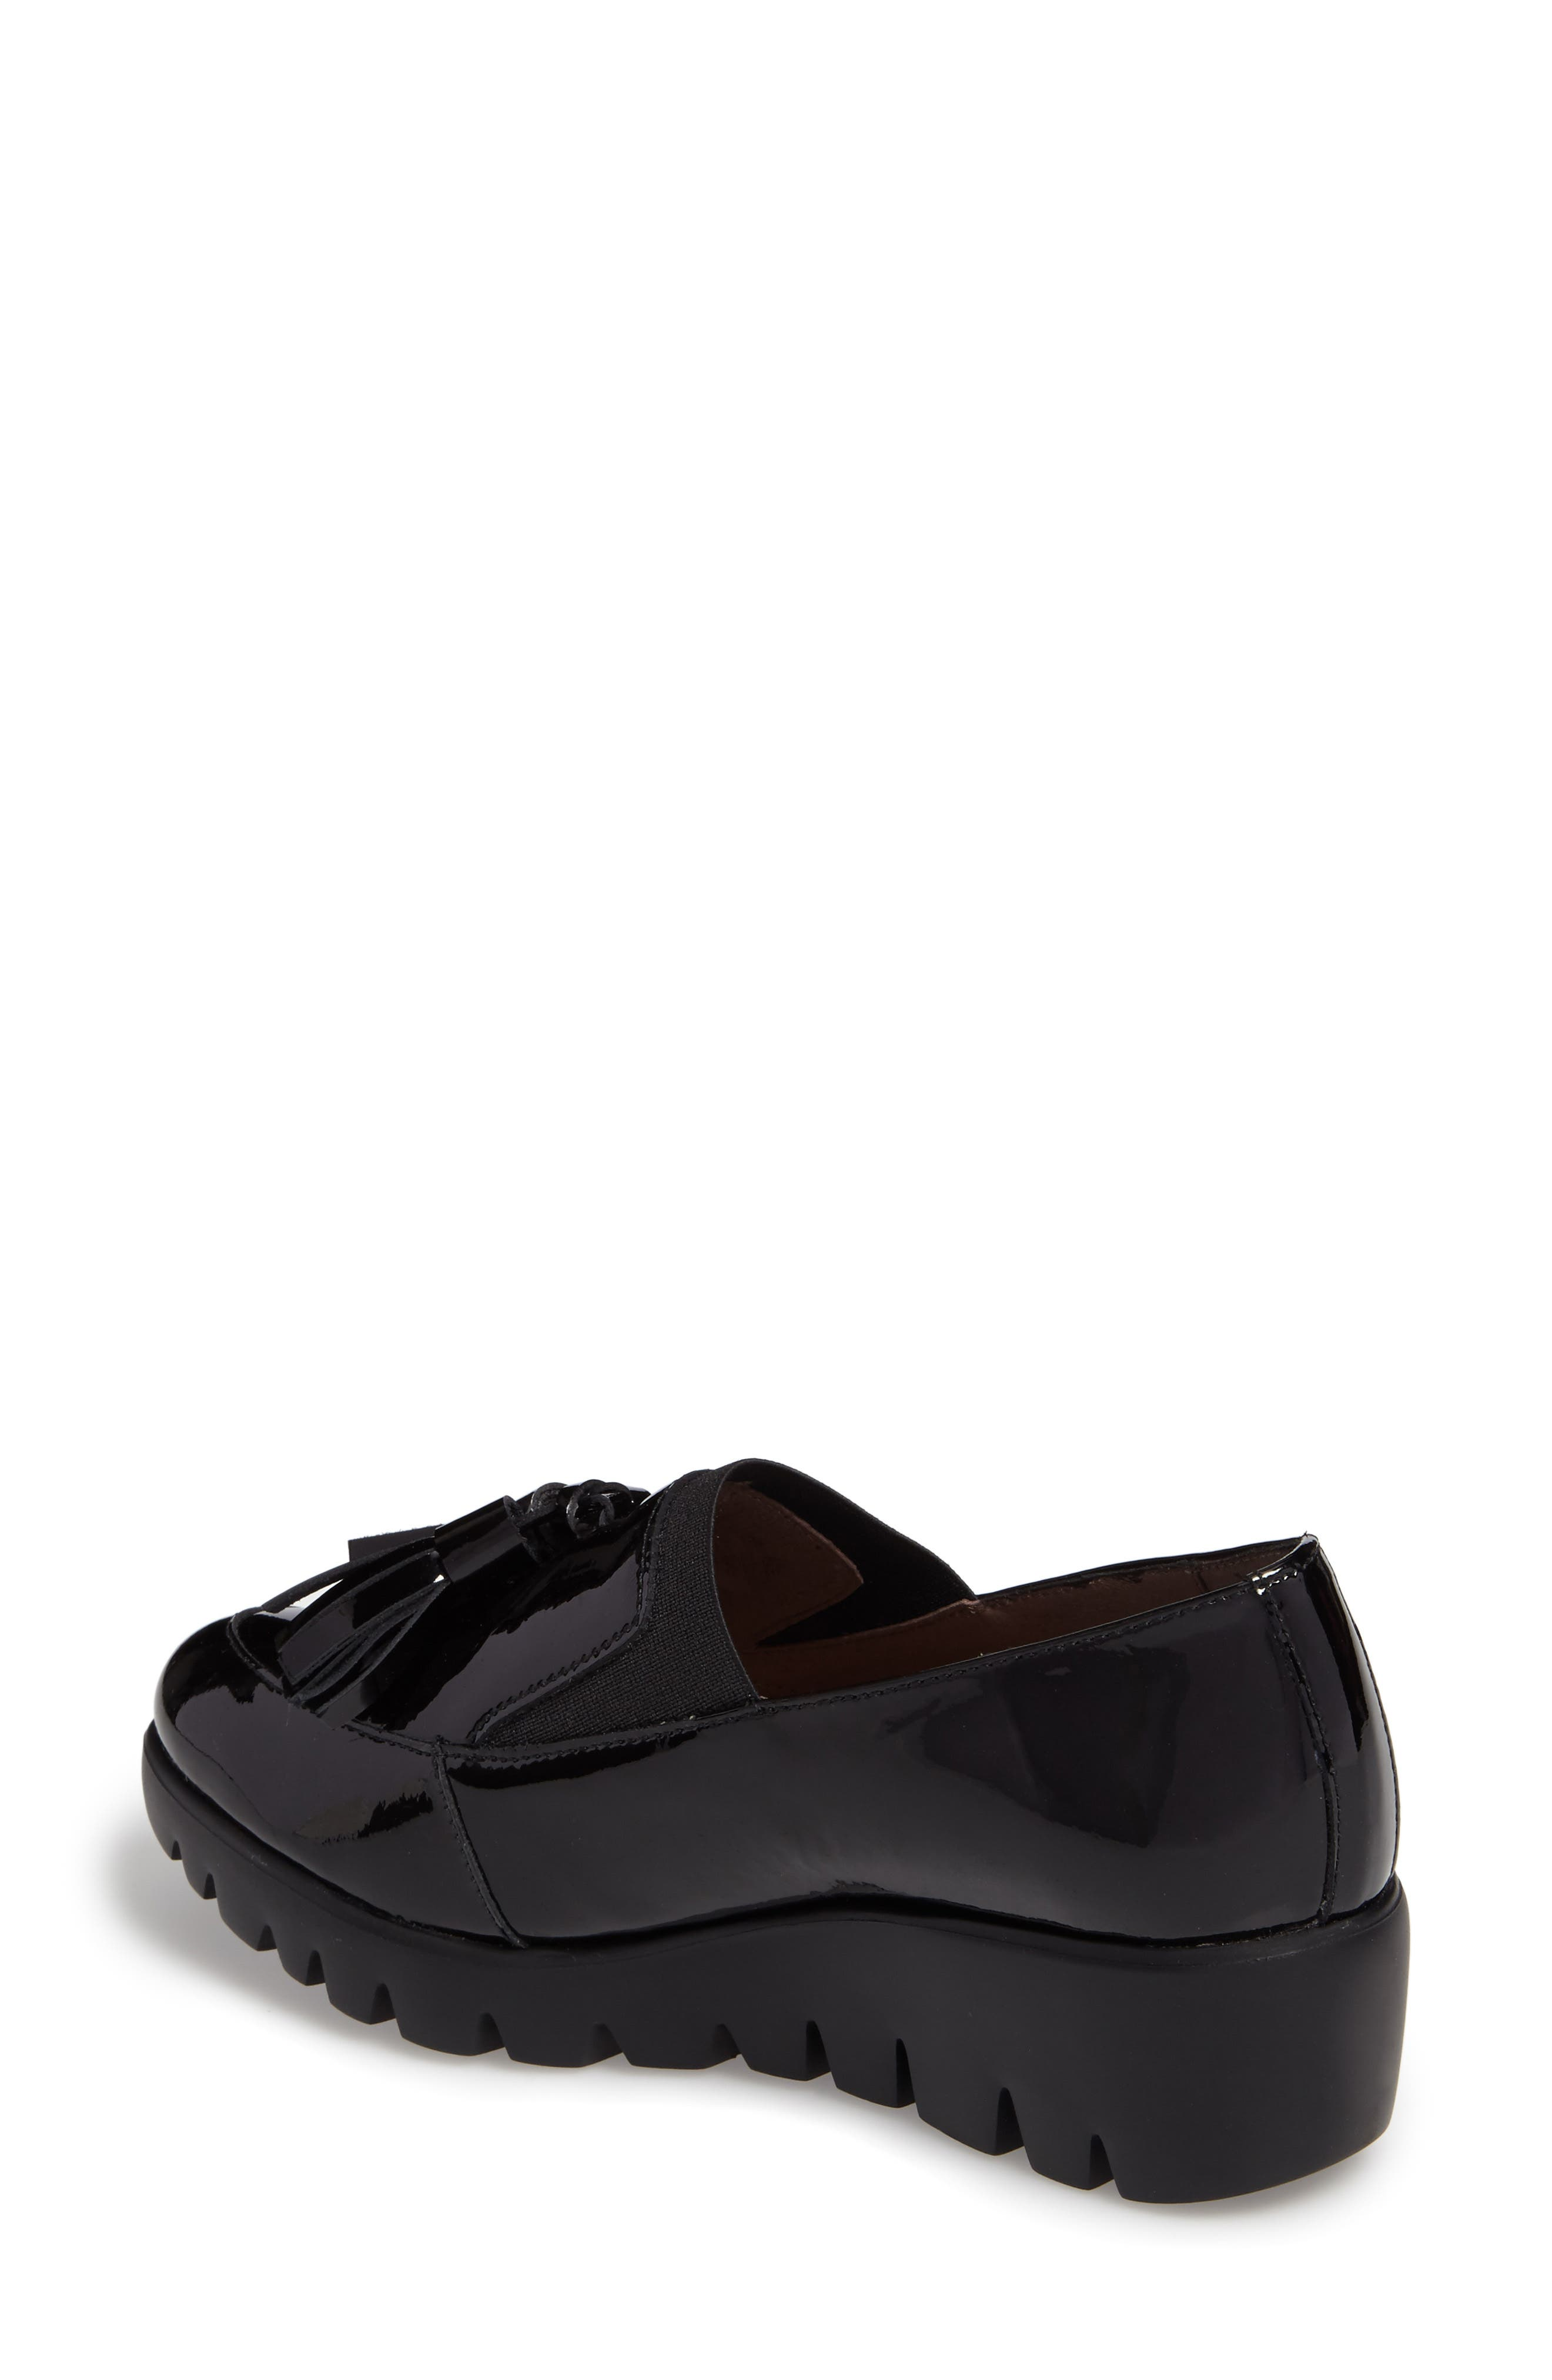 Talla Loafer Wedge,                             Alternate thumbnail 2, color,                             Black Patent Leather